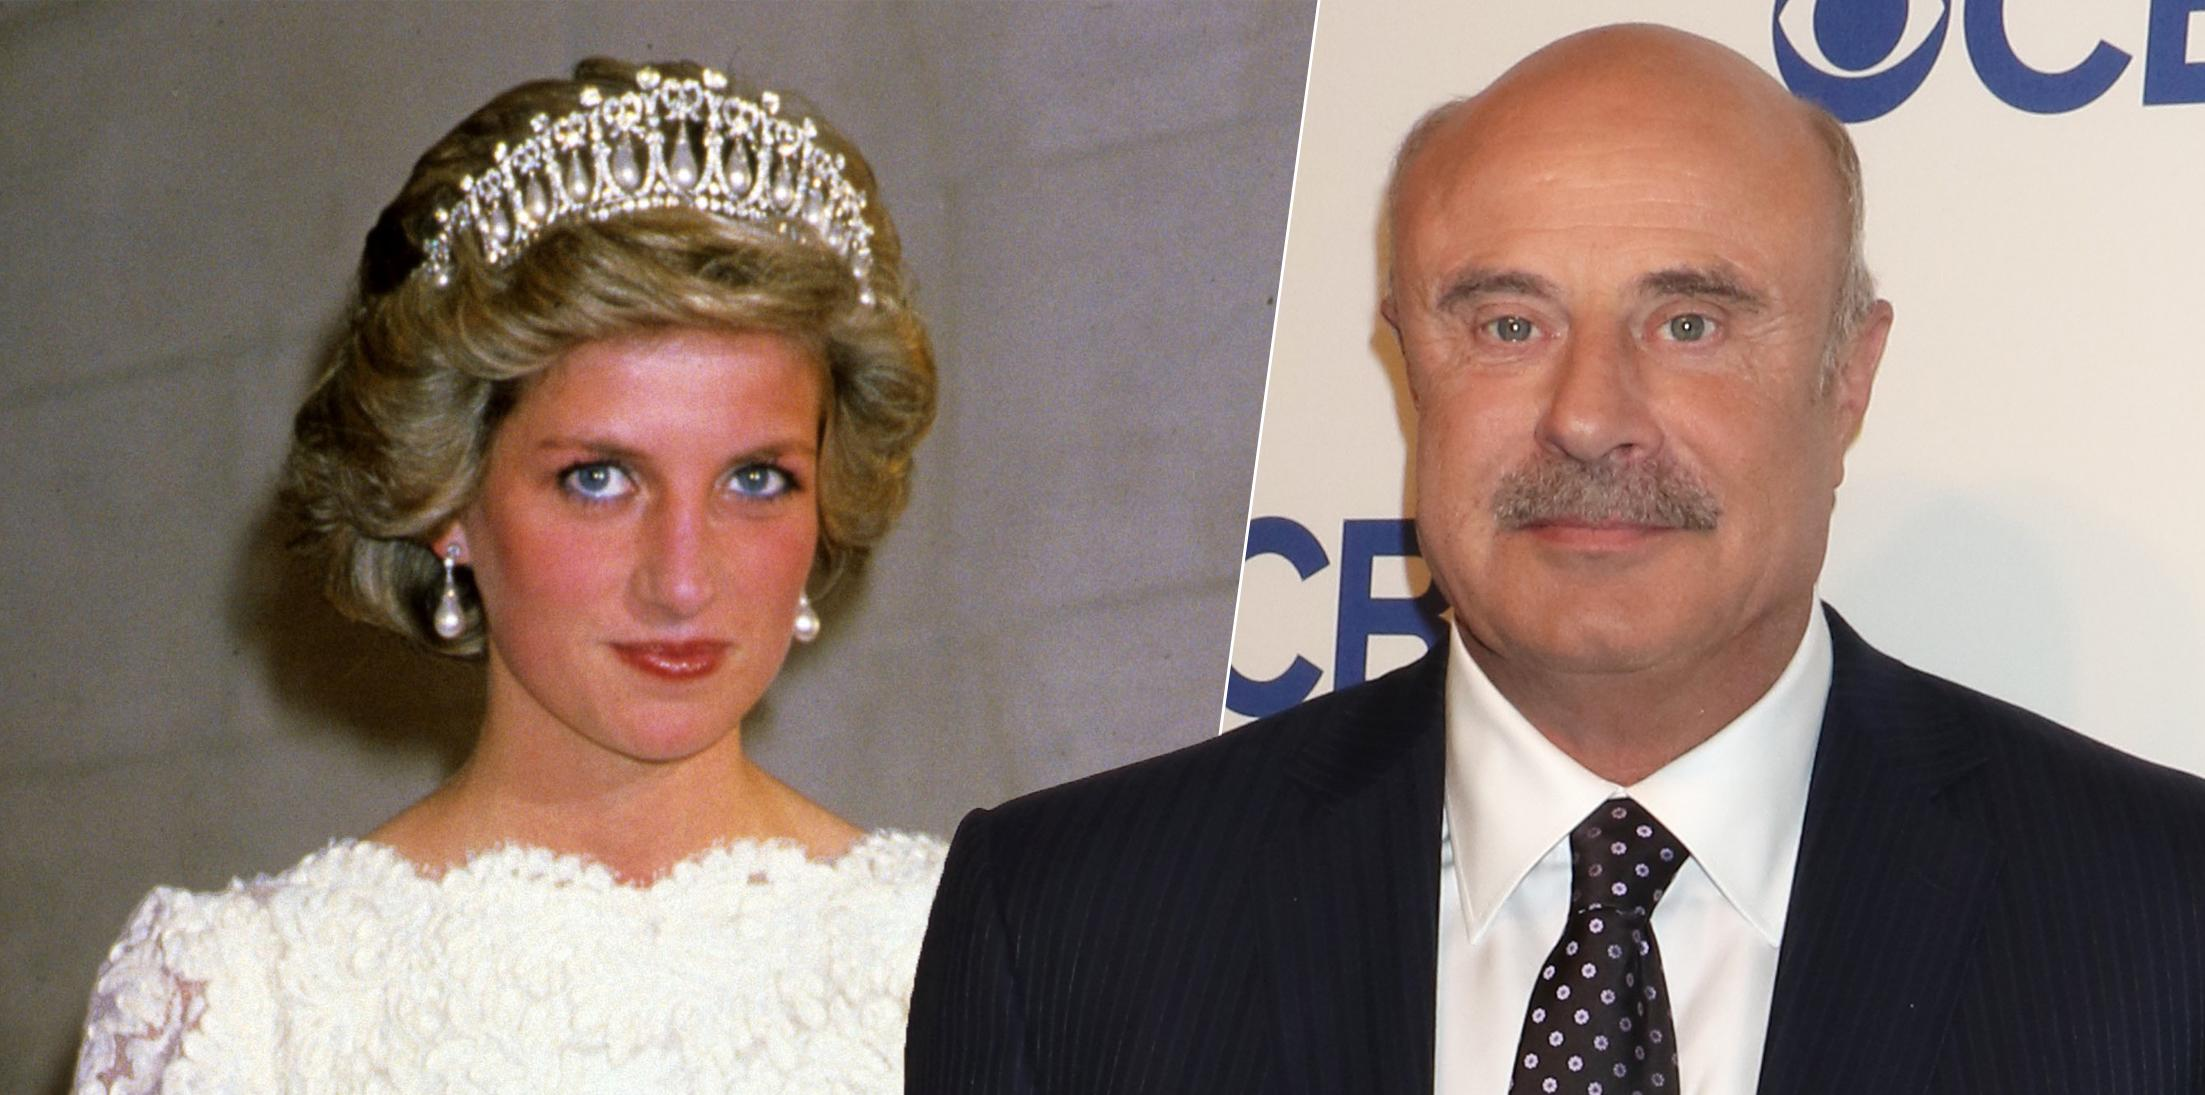 Left, Princess Diana attends Royal 5 Day Tour in America. Right, Dr. Phil McGraw attends CBS Network 2016 Upfront Presentation, New York, America - 18 May 2016